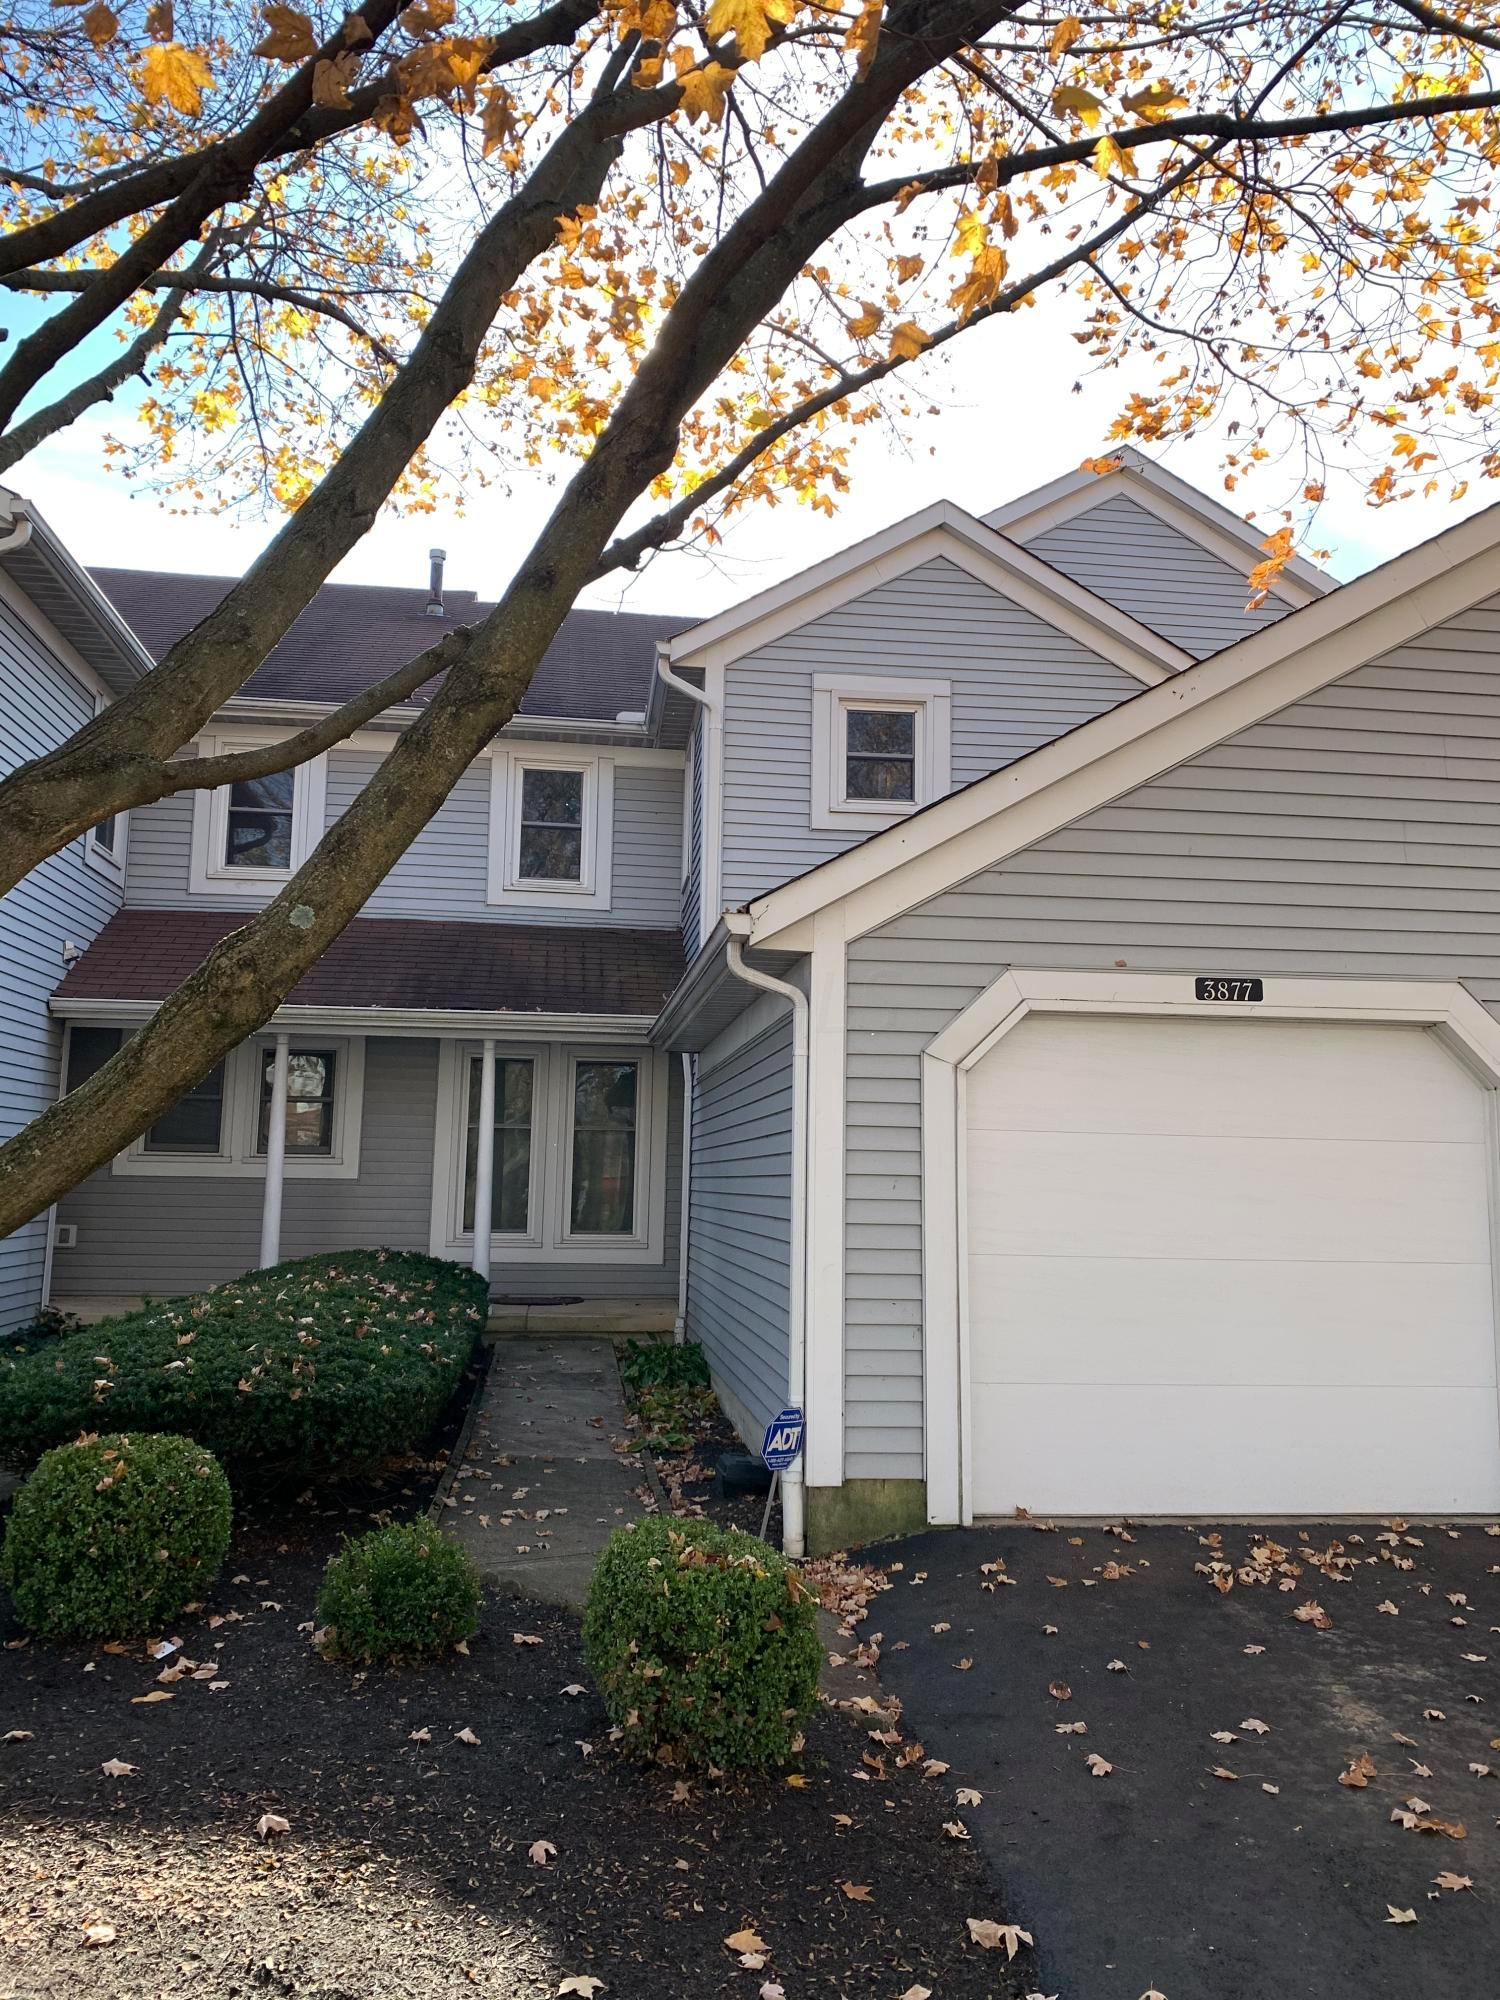 3877 Oakbridge Lane, Dublin, Ohio 43016, 2 Bedrooms Bedrooms, ,2 BathroomsBathrooms,Residential,For Sale,Oakbridge,220039528